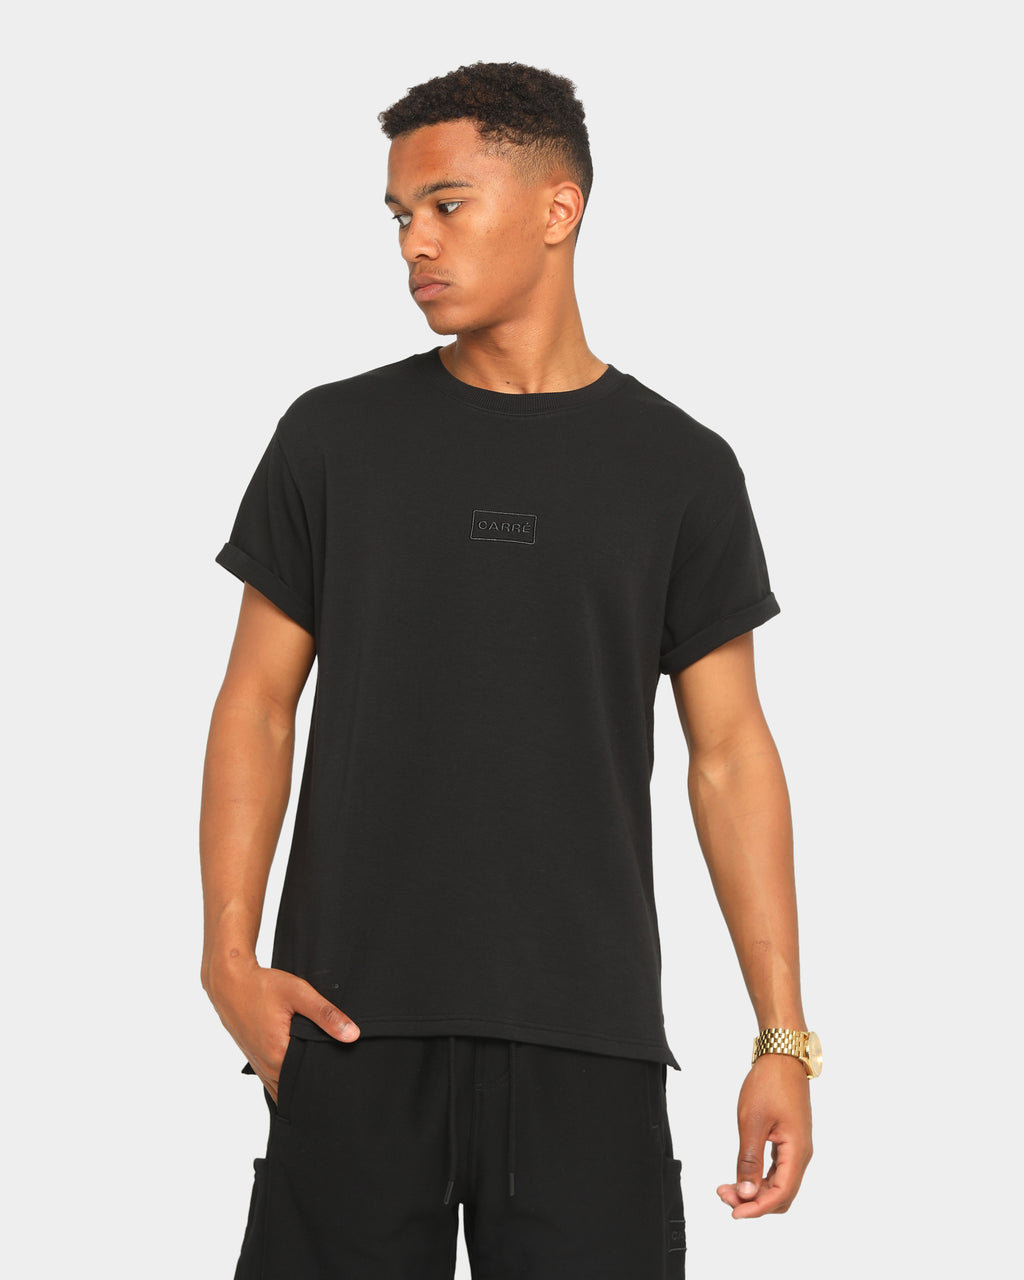 Carré Commando Short Sleeve T-Shirt Black